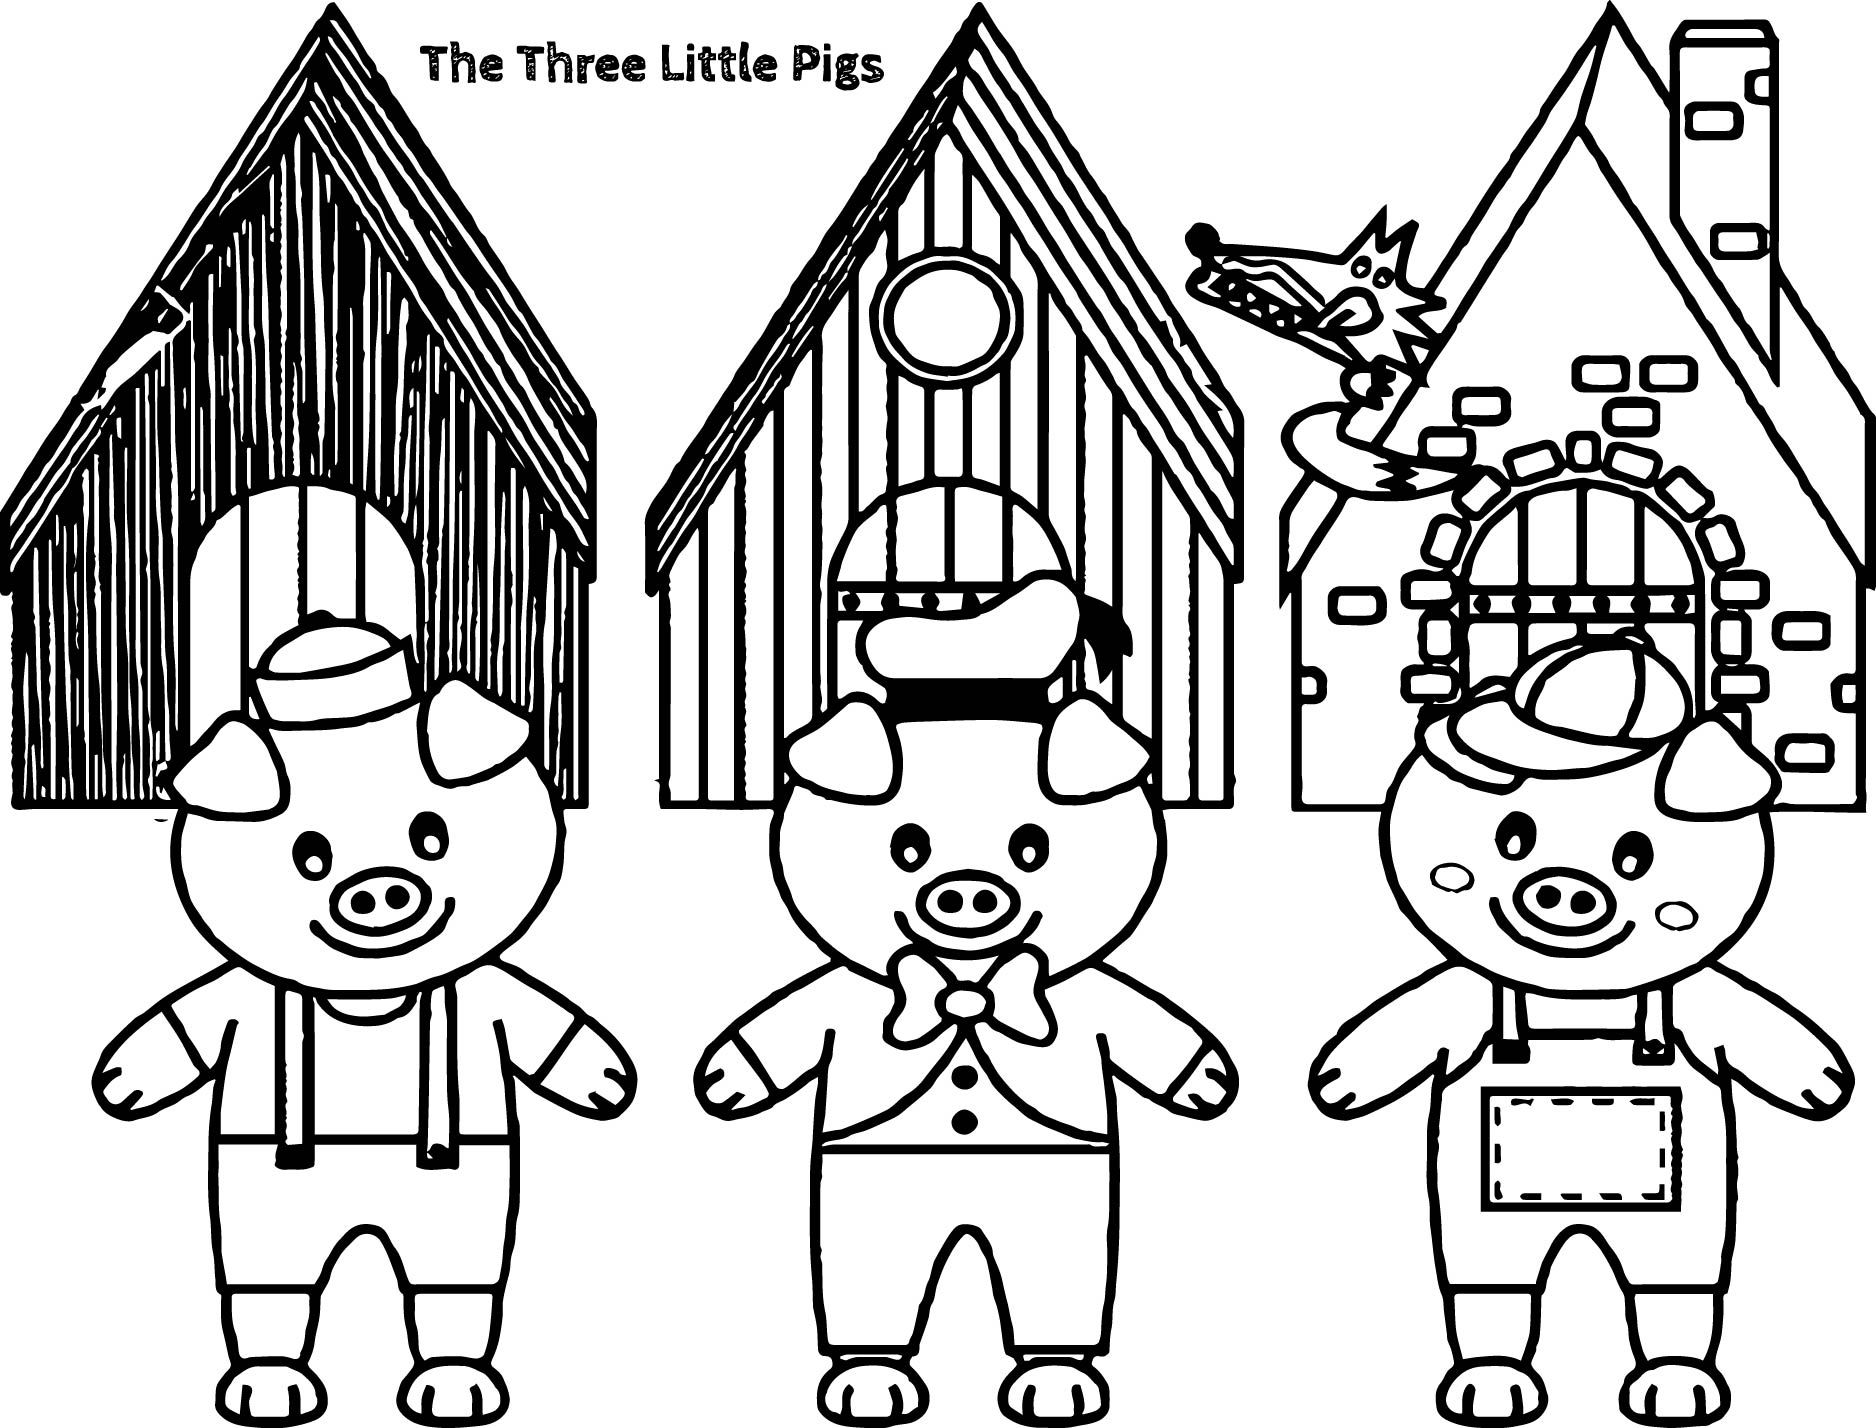 Awesome Three Little Pigs And The Big Bad Wolf Children Story Coloring Page Cartoon Coloring Pages Little Pigs Coloring Pages